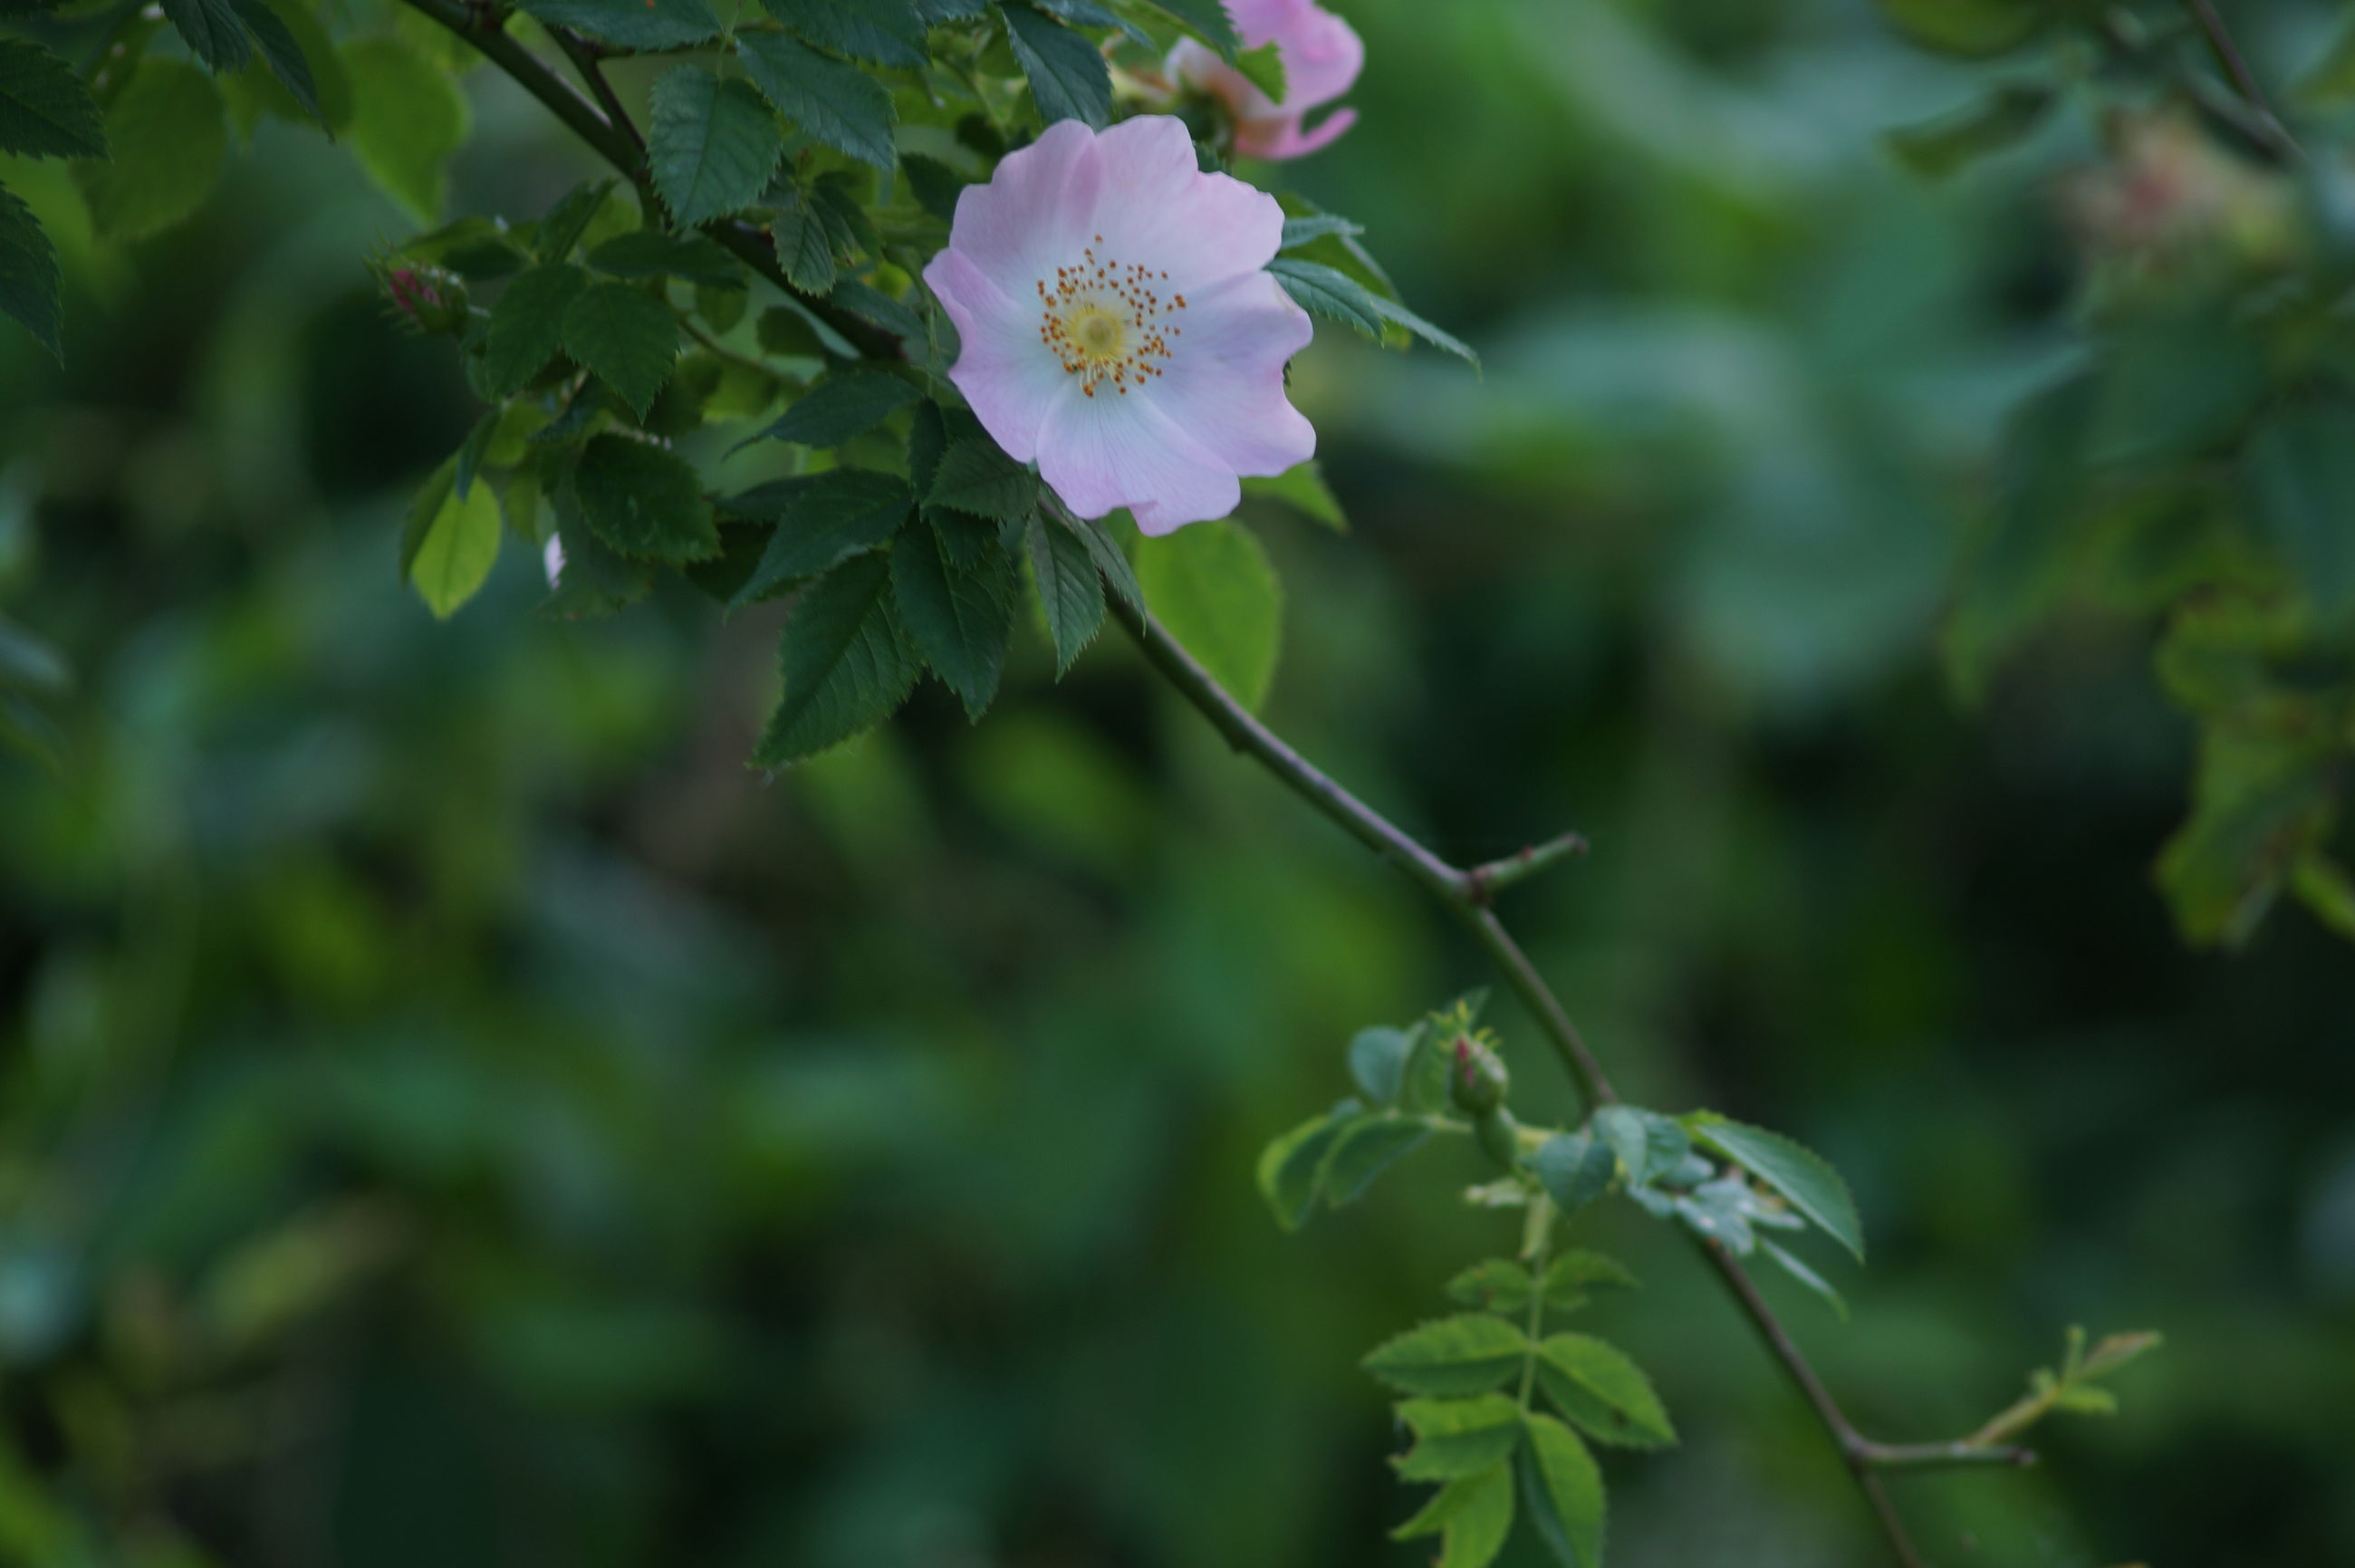 flower, growth, nature, fragility, beauty in nature, plant, freshness, blooming, outdoors, no people, day, close-up, flower head